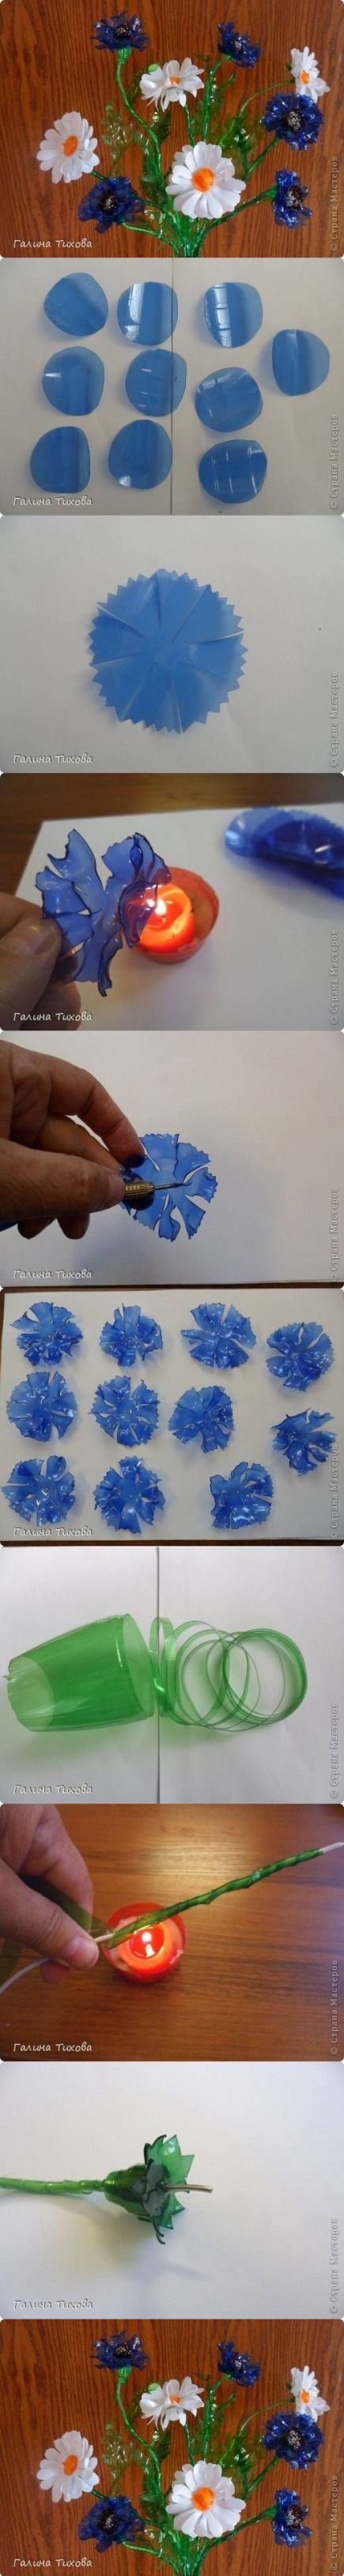 Plastic flowers - make outside or with good ventilation